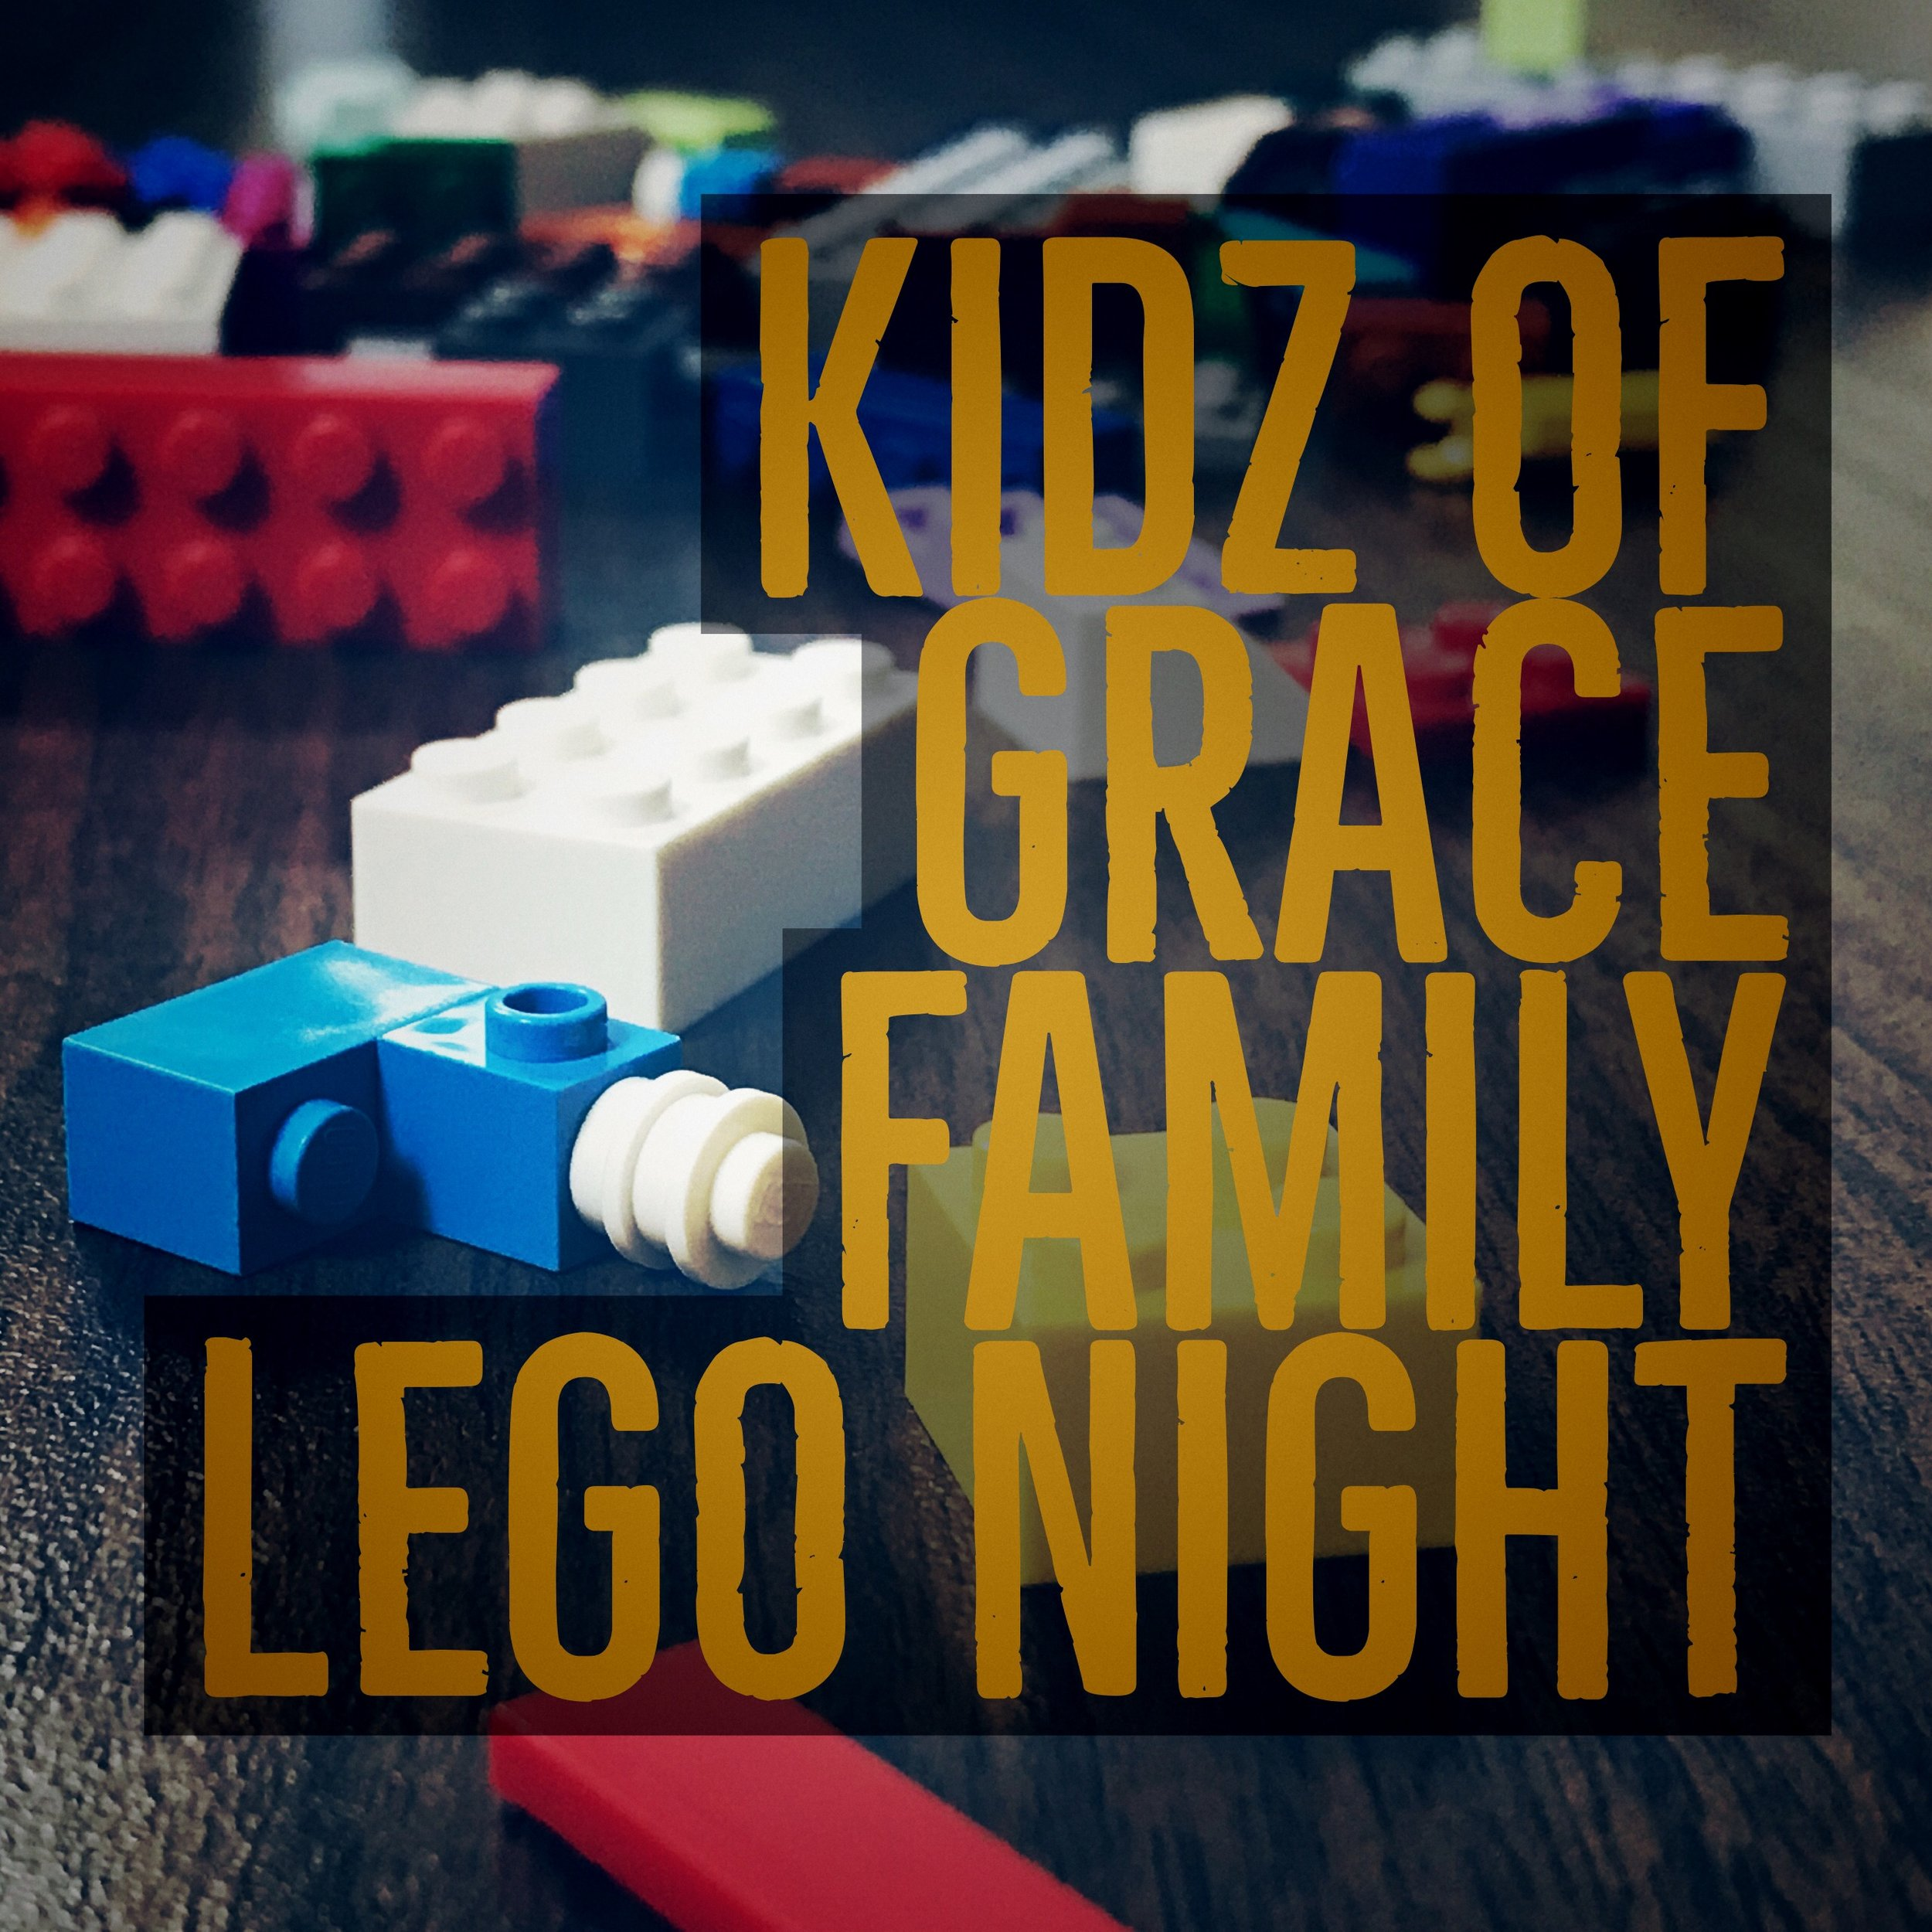 Kidz of Grace Family Lego Night     Grace Church Kidz of Grace Family Lego Night